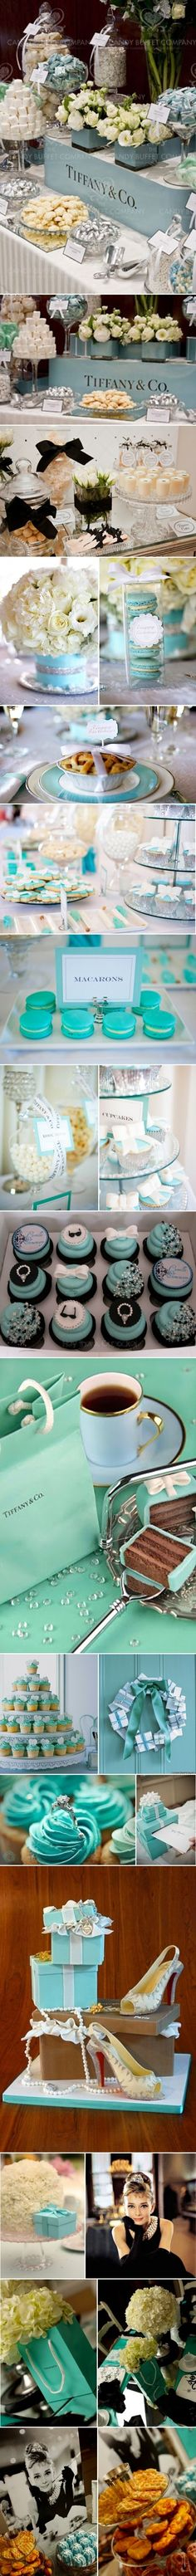 Tiffany and Co. Bridal Shower